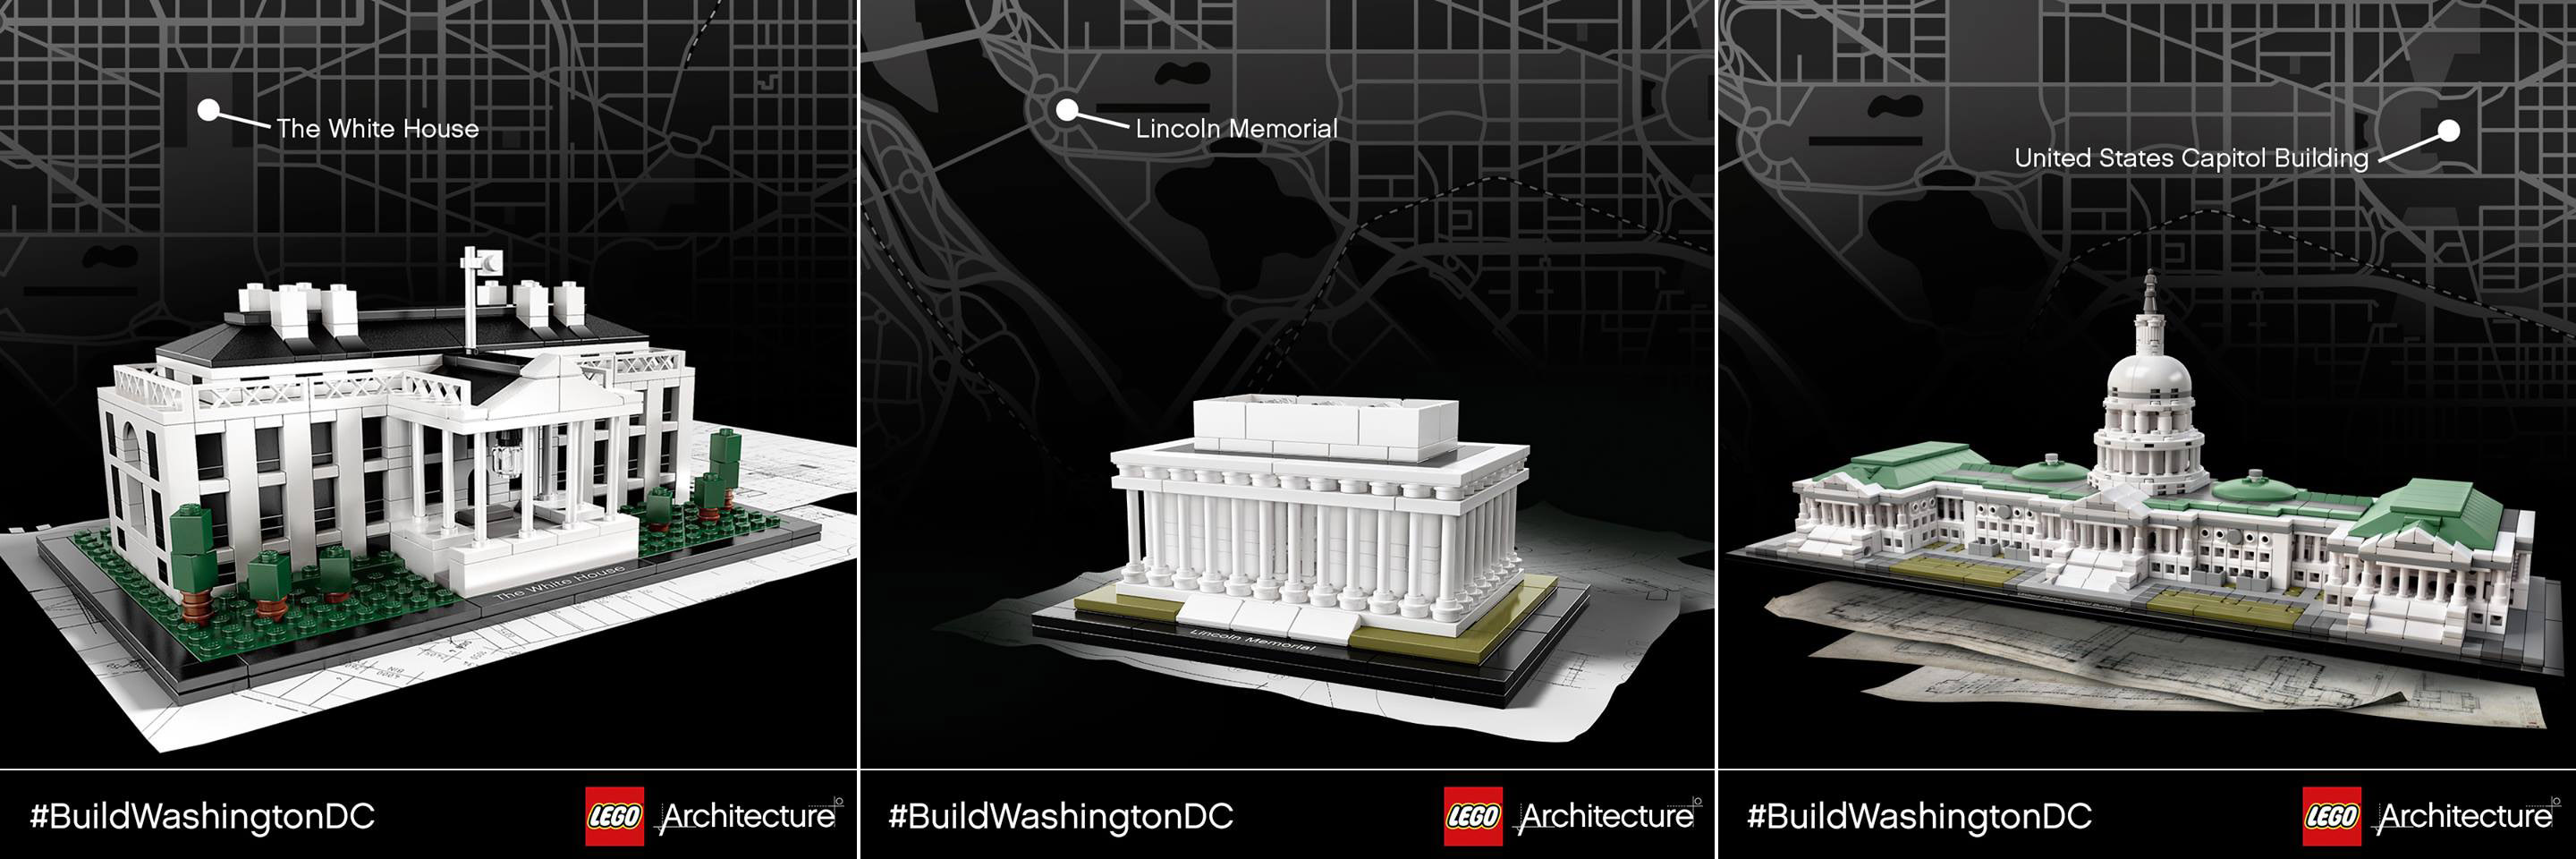 Legoarchitecture Tour Of Washington Dc Brick Architect